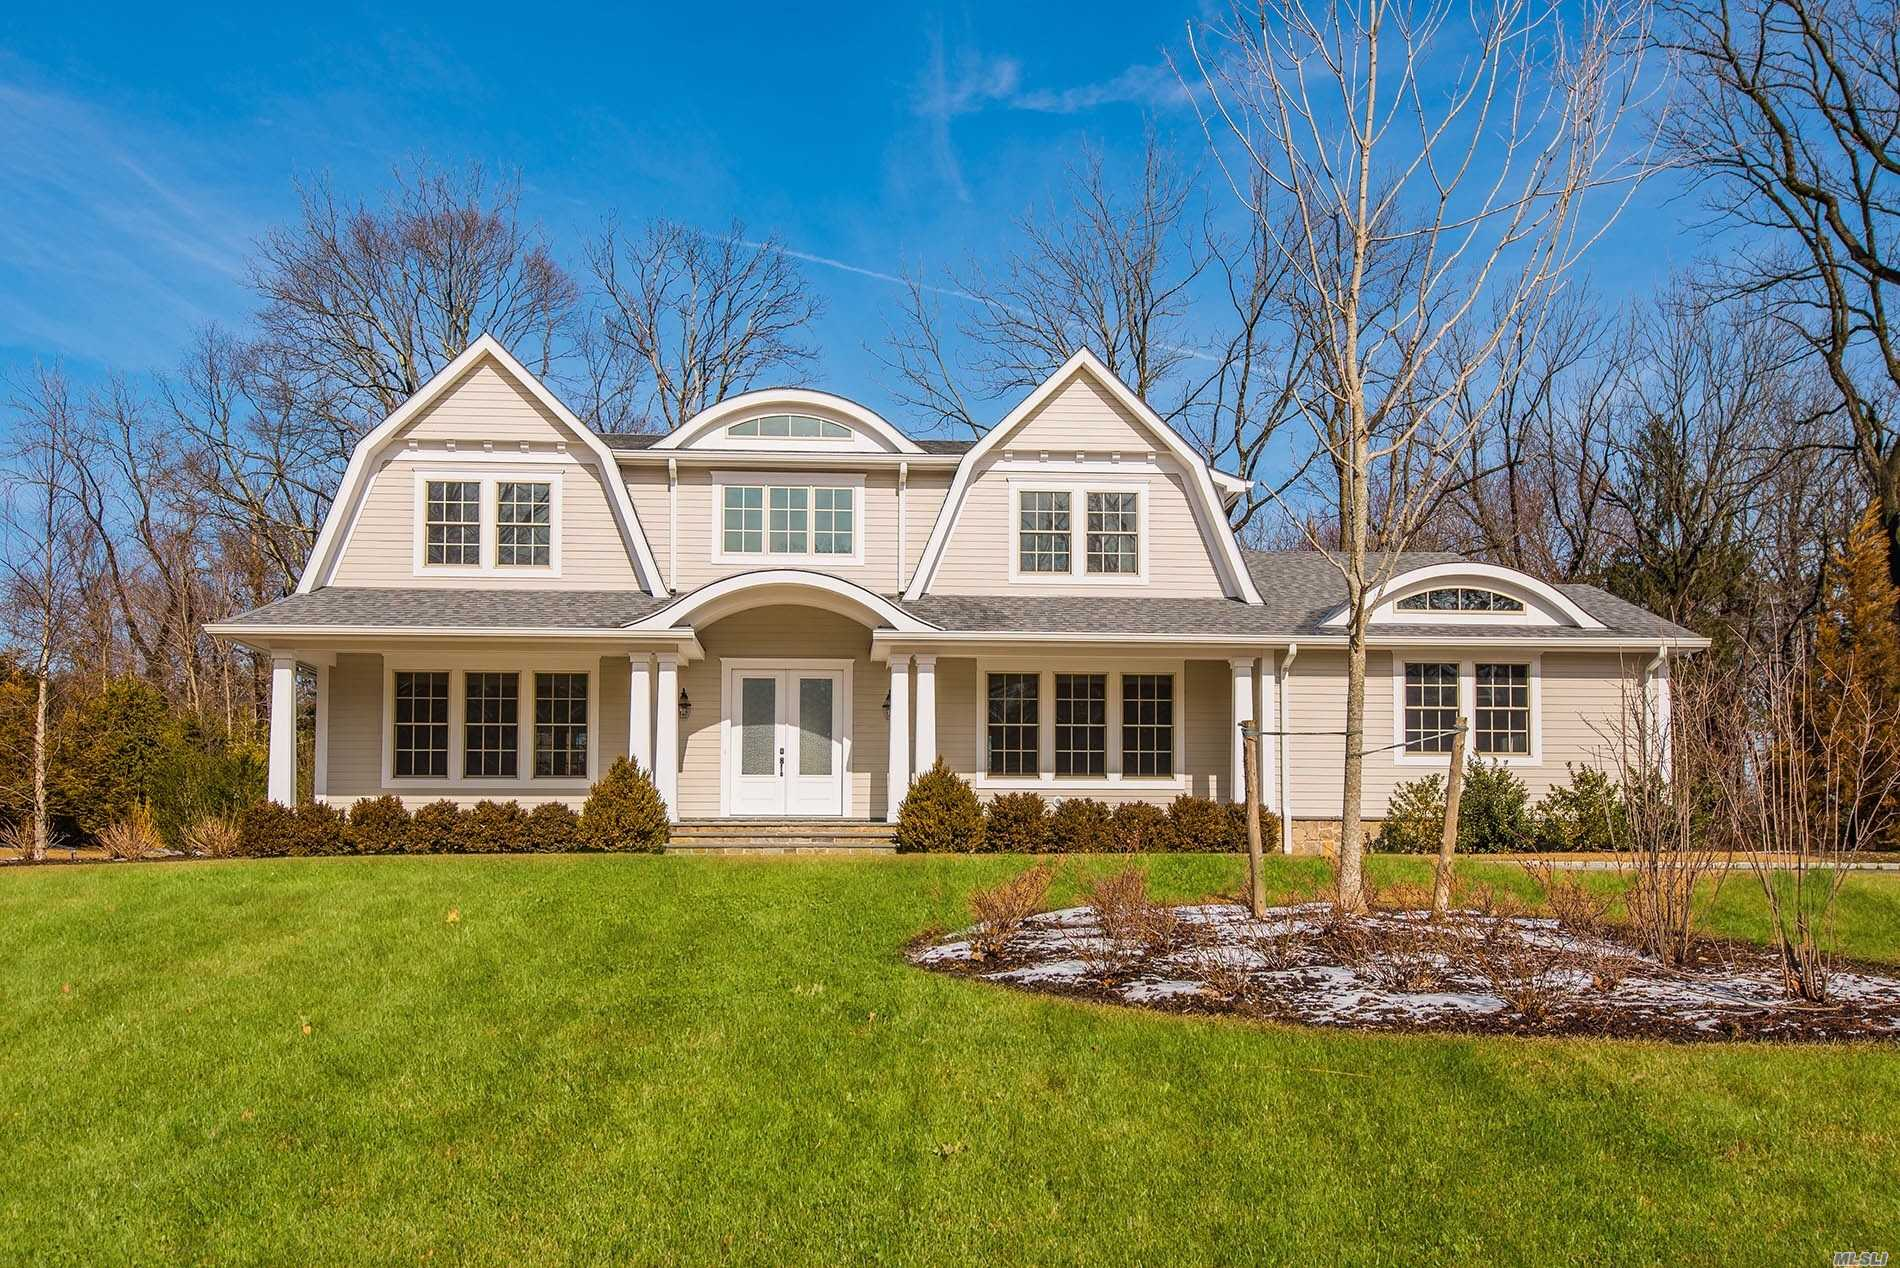 Stunning New Construction In The Heart Of Roslyn Estates!! Hampton-Style Colonial On Over 1/2 Acre Of Exquisite Landscaping. Close To Top Shopping, Highways, And Lirr. Three Luxurious Levels, Hi-Grade Custom Build, High Ceilings And Large Windows Throughout, Huge Walk-Out Lower Level For Optimal Entertaining.